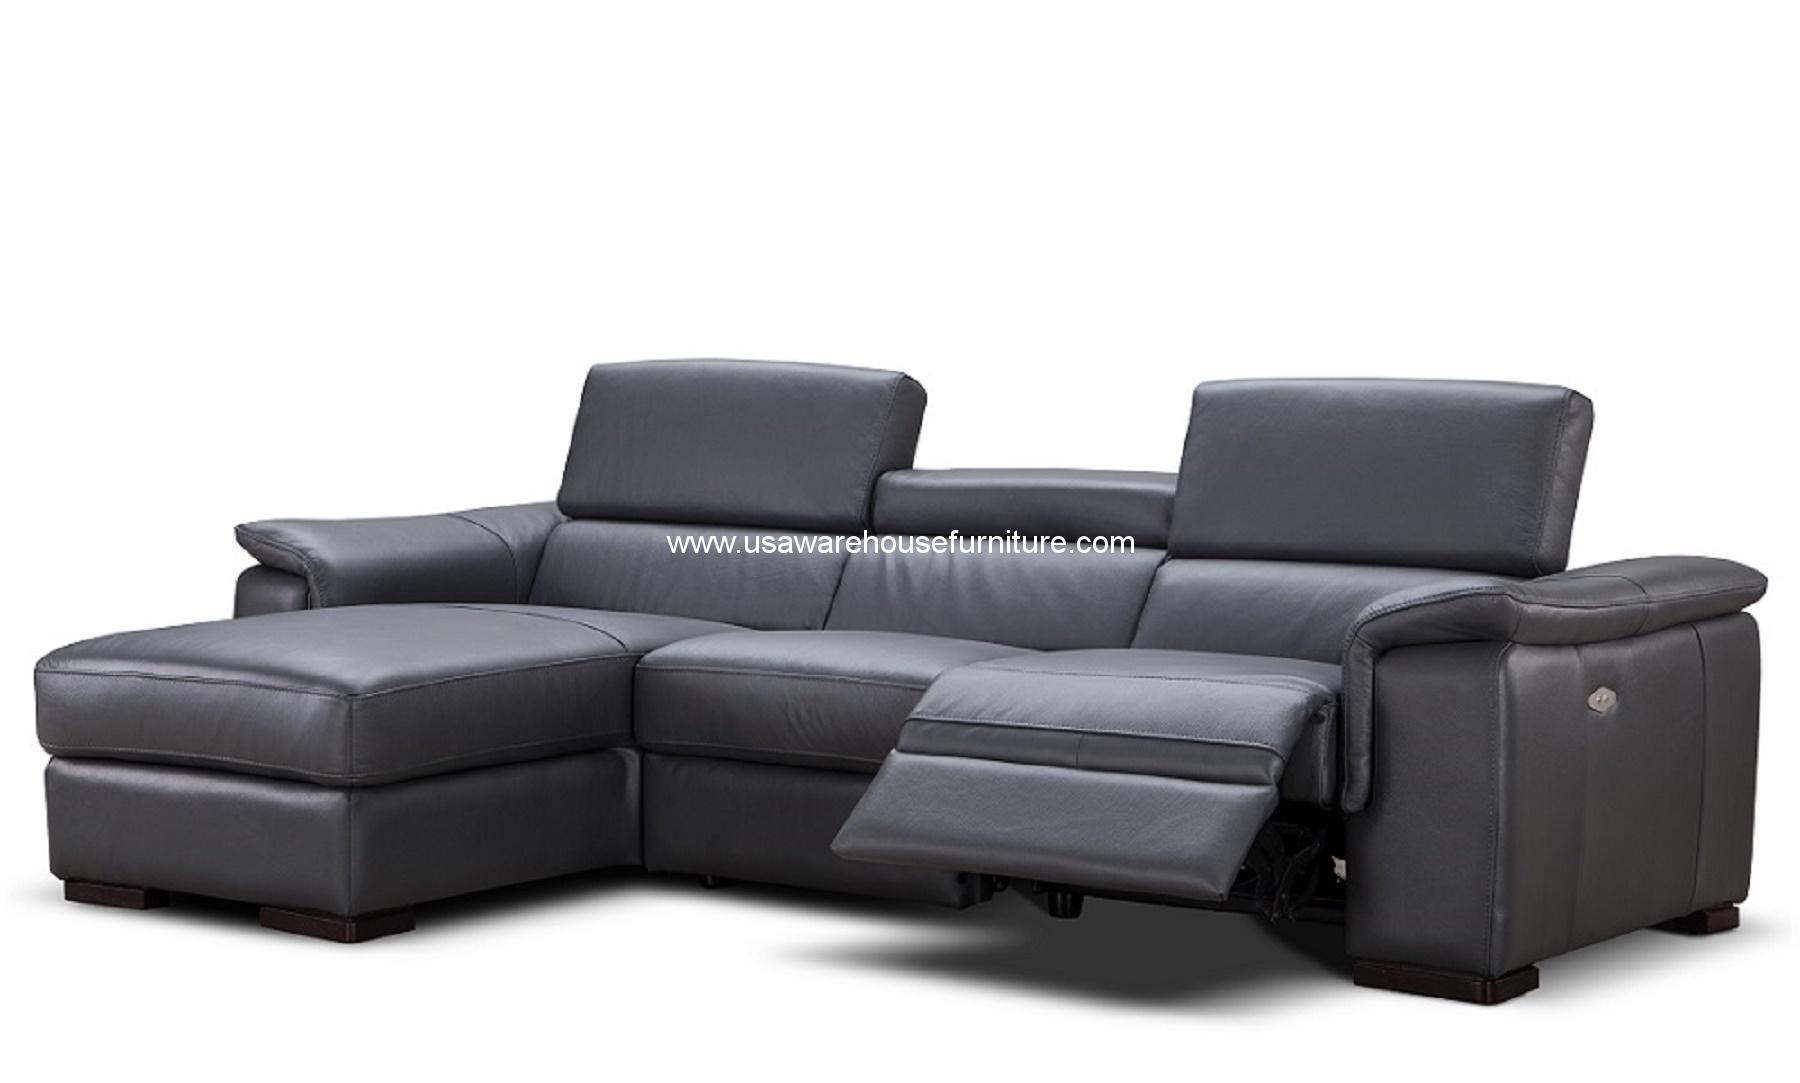 reclinable sectional sofas 7 piece sofa costco alba premium leather power reclining usa